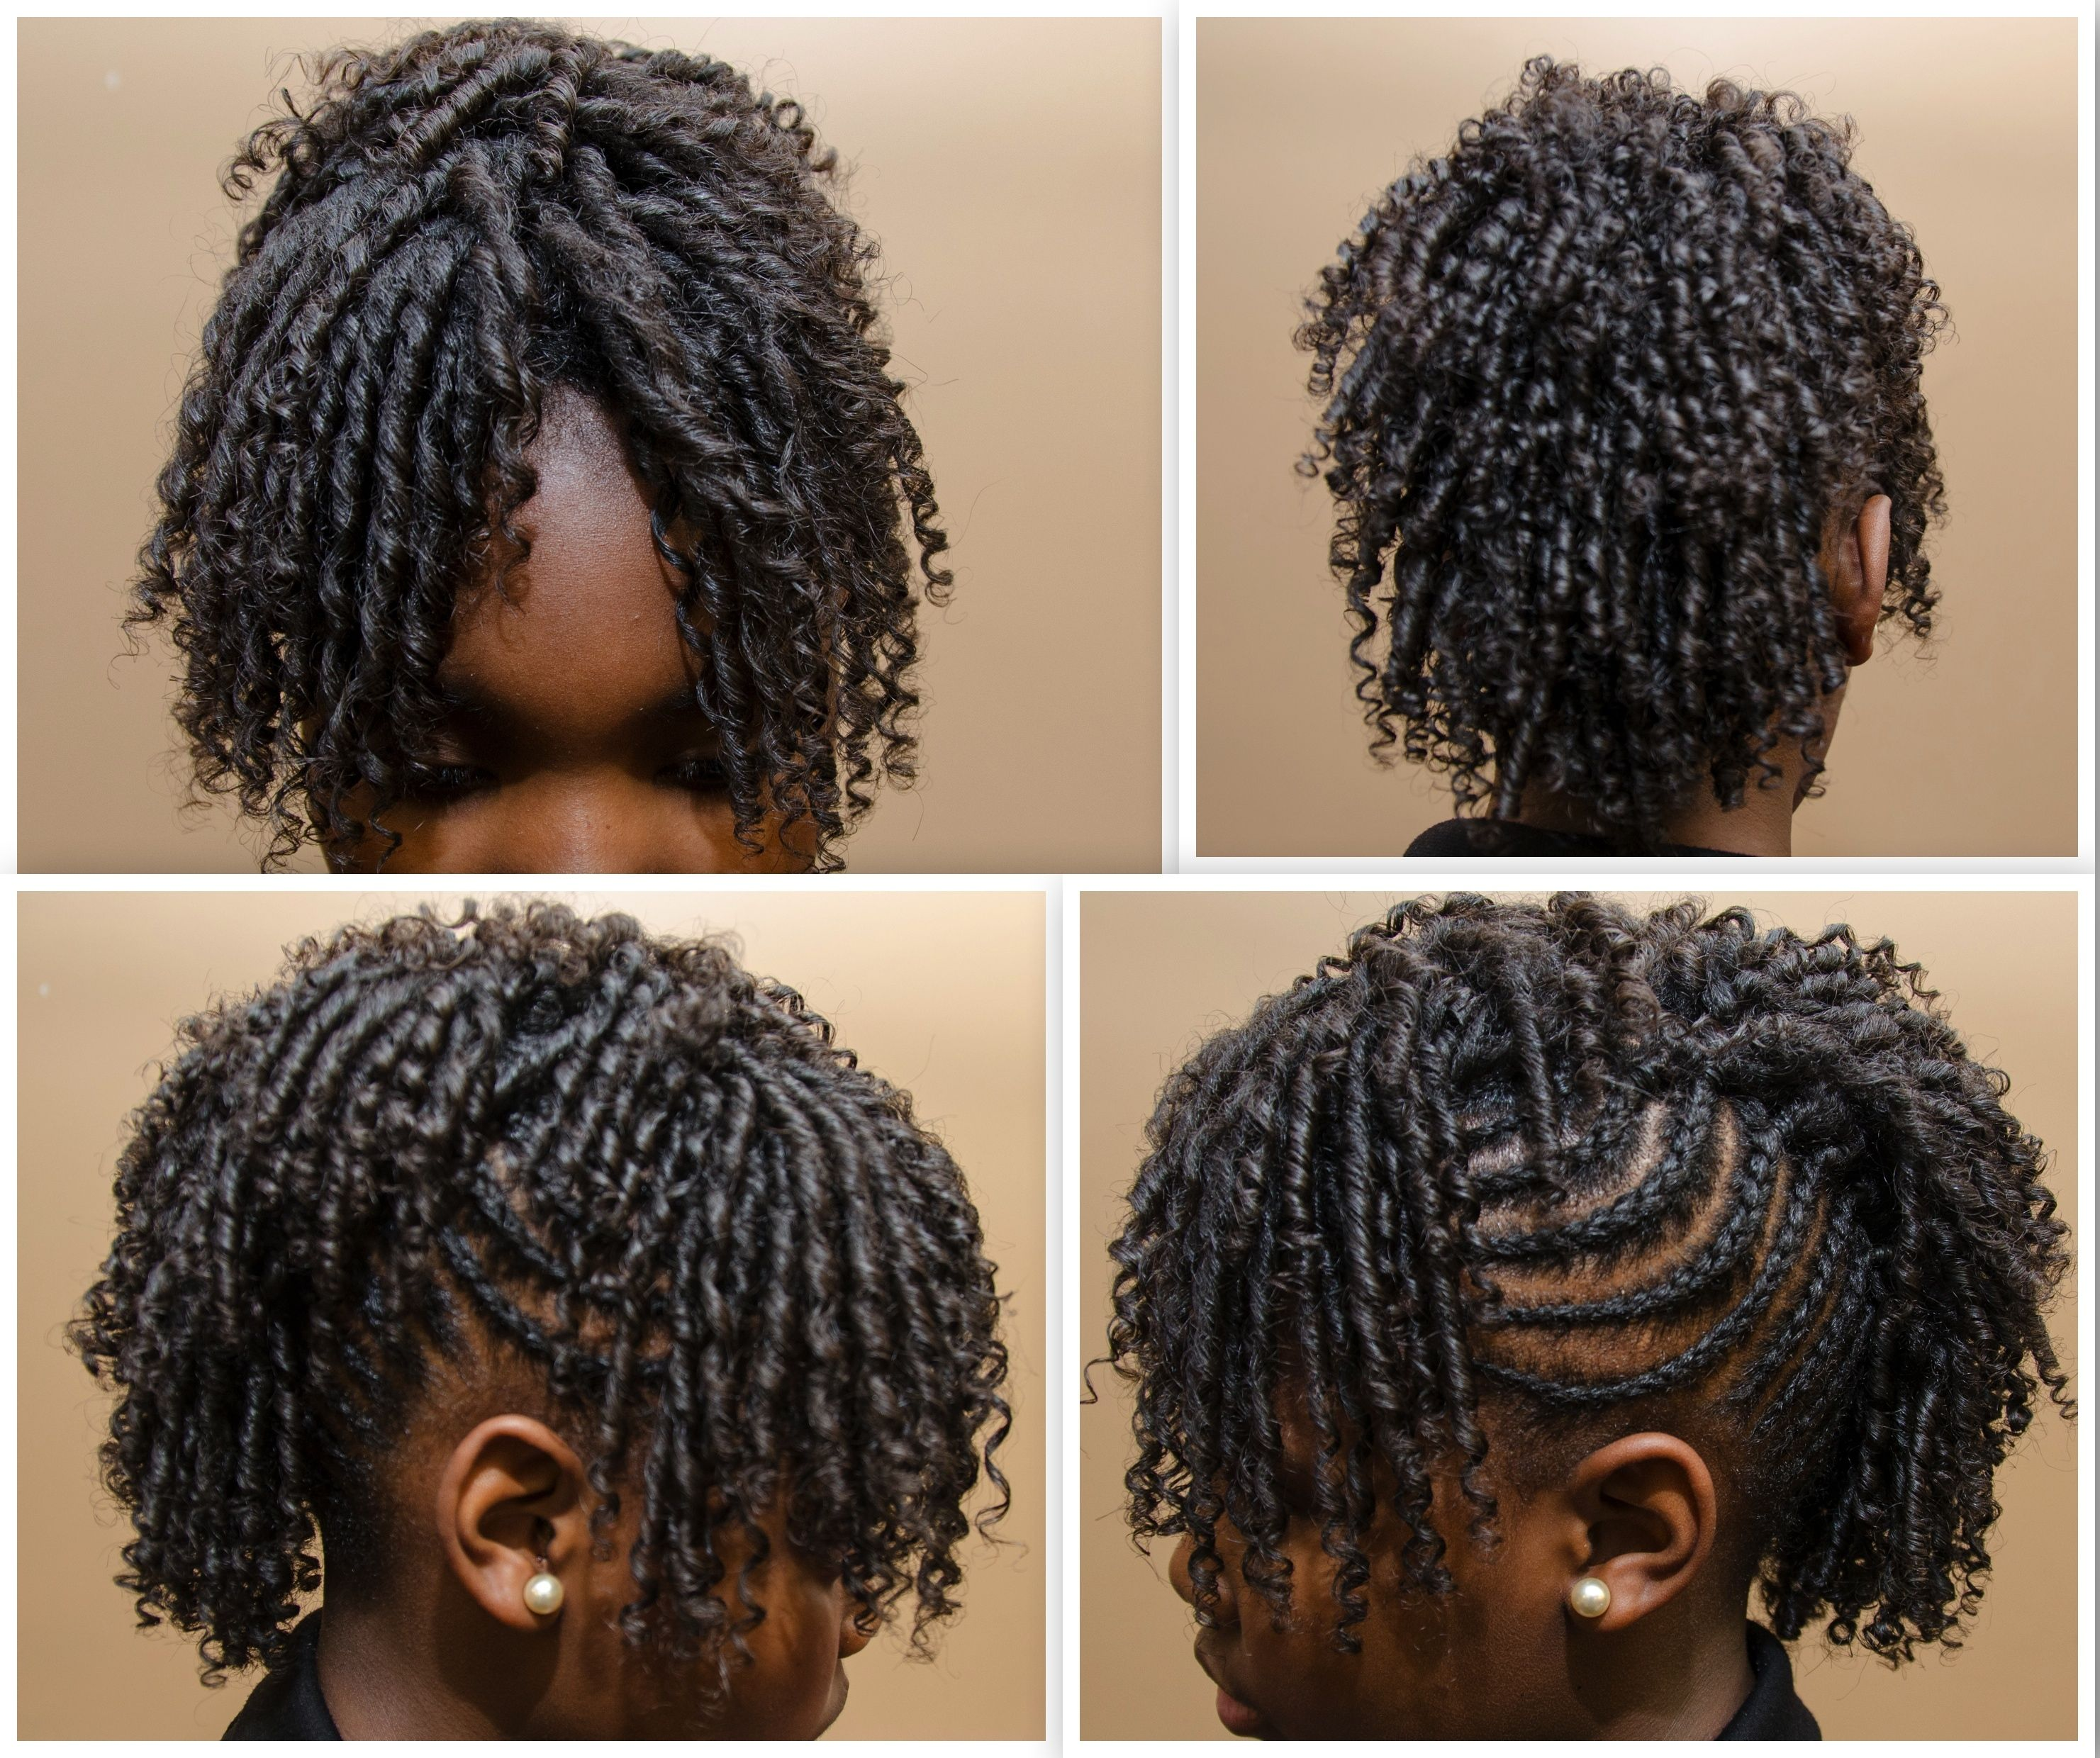 Braided Mohawk With A Straw Set On Natural Hair Tnc Natural Hair Inspiration Natural Hair Styles Hair Styles